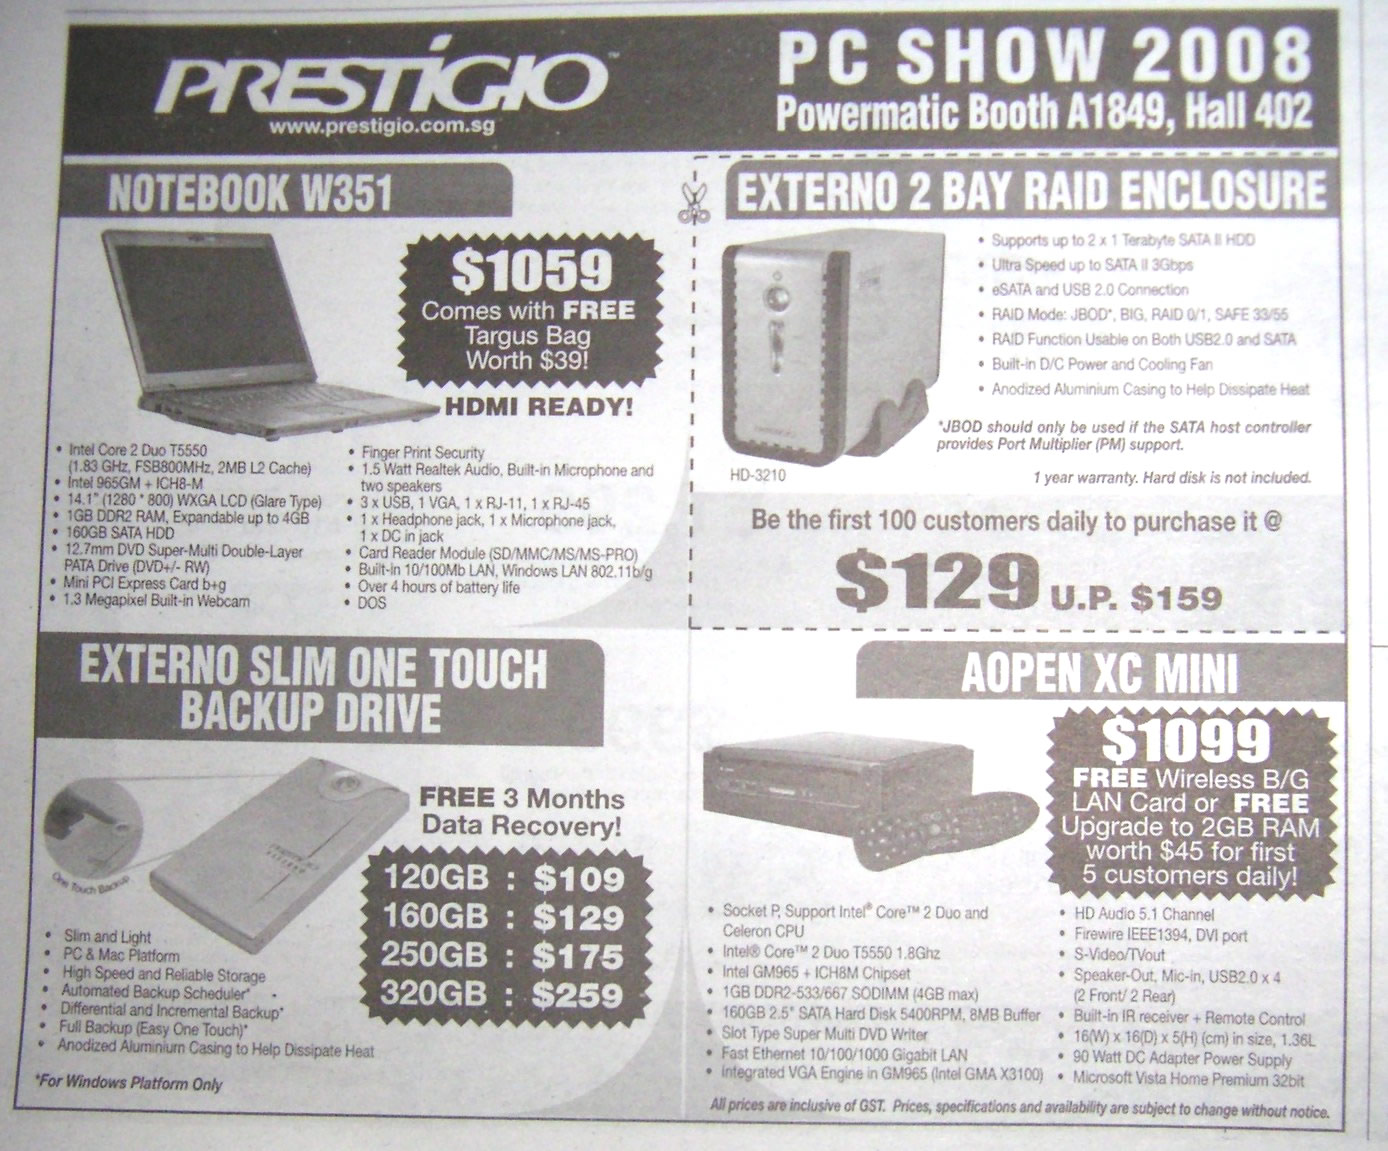 PC Show 2008 price list image brochure of Prestigio